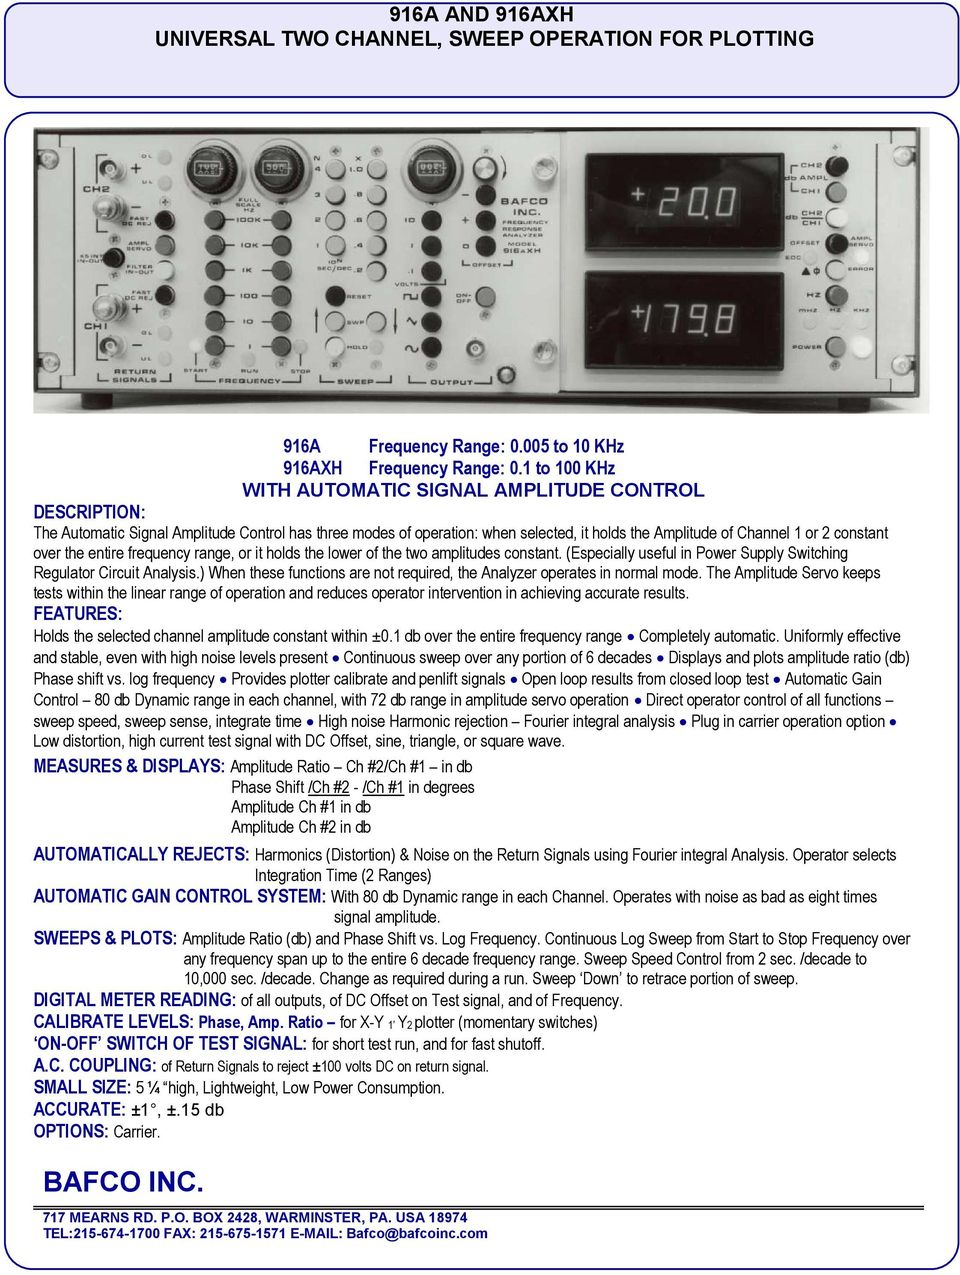 Frequency Response Analyzers Pdf Supply Constant Current Charger Circuit Switchingregulatorcircuit Over The Entire Range Or It Holds Lower Of Two Amplitudes